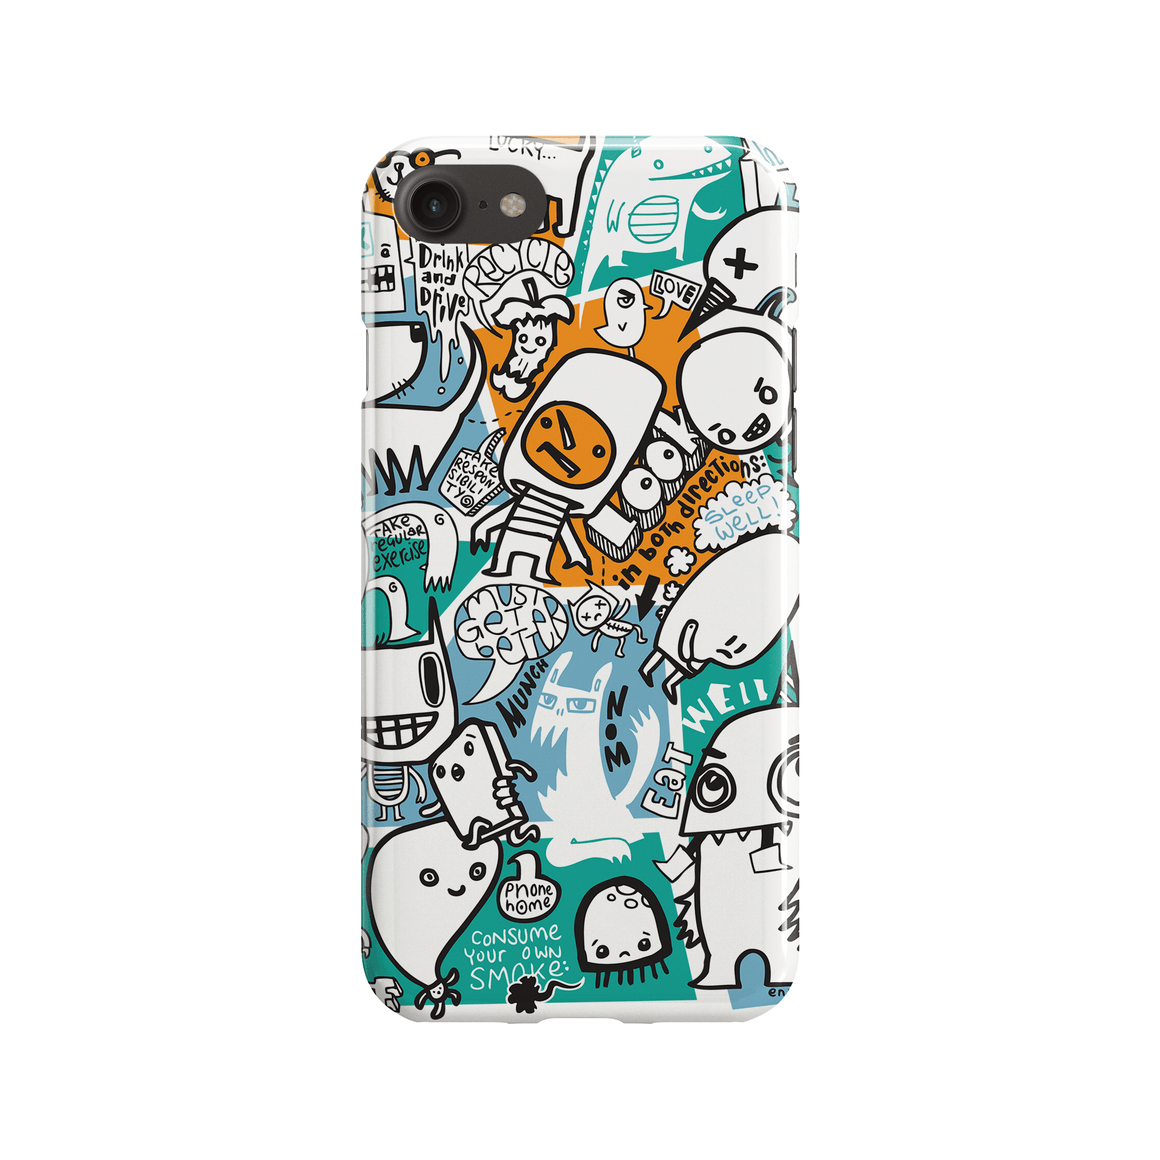 Advice Phone Case - Premium Artwear Curartee